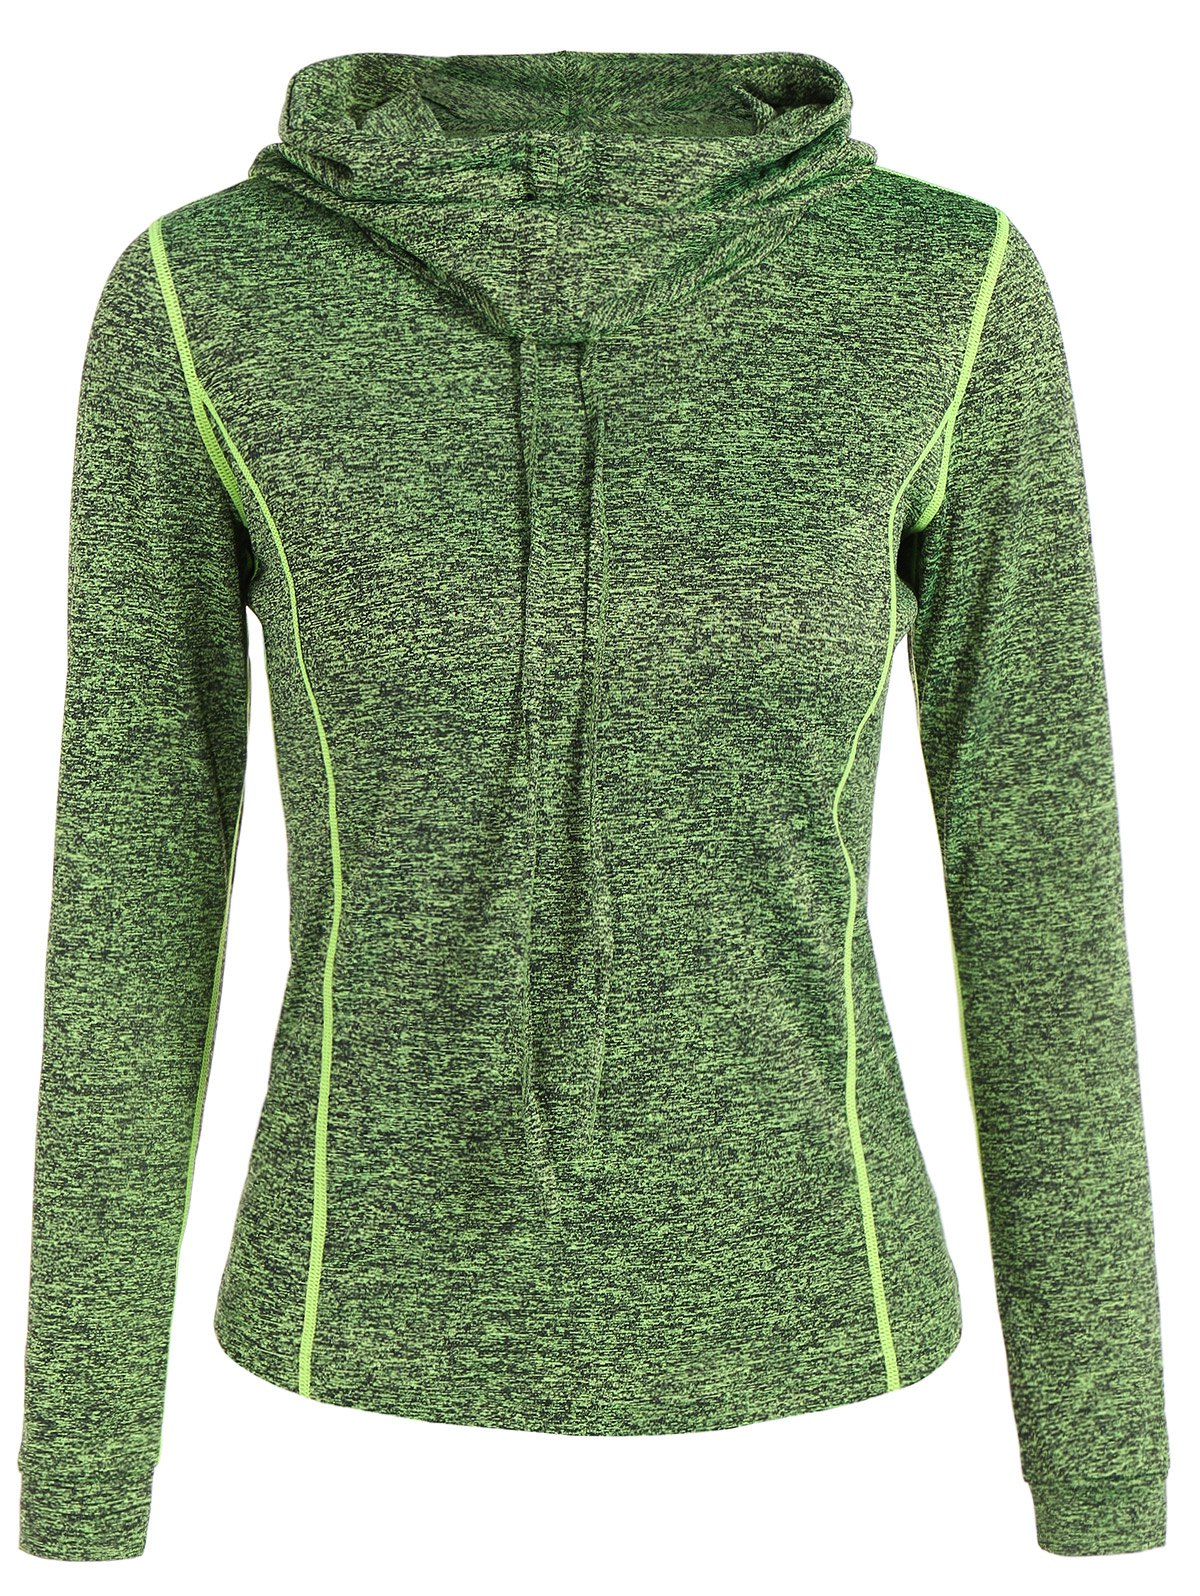 Sports Wear Drawstring Hoodie - GREEN M